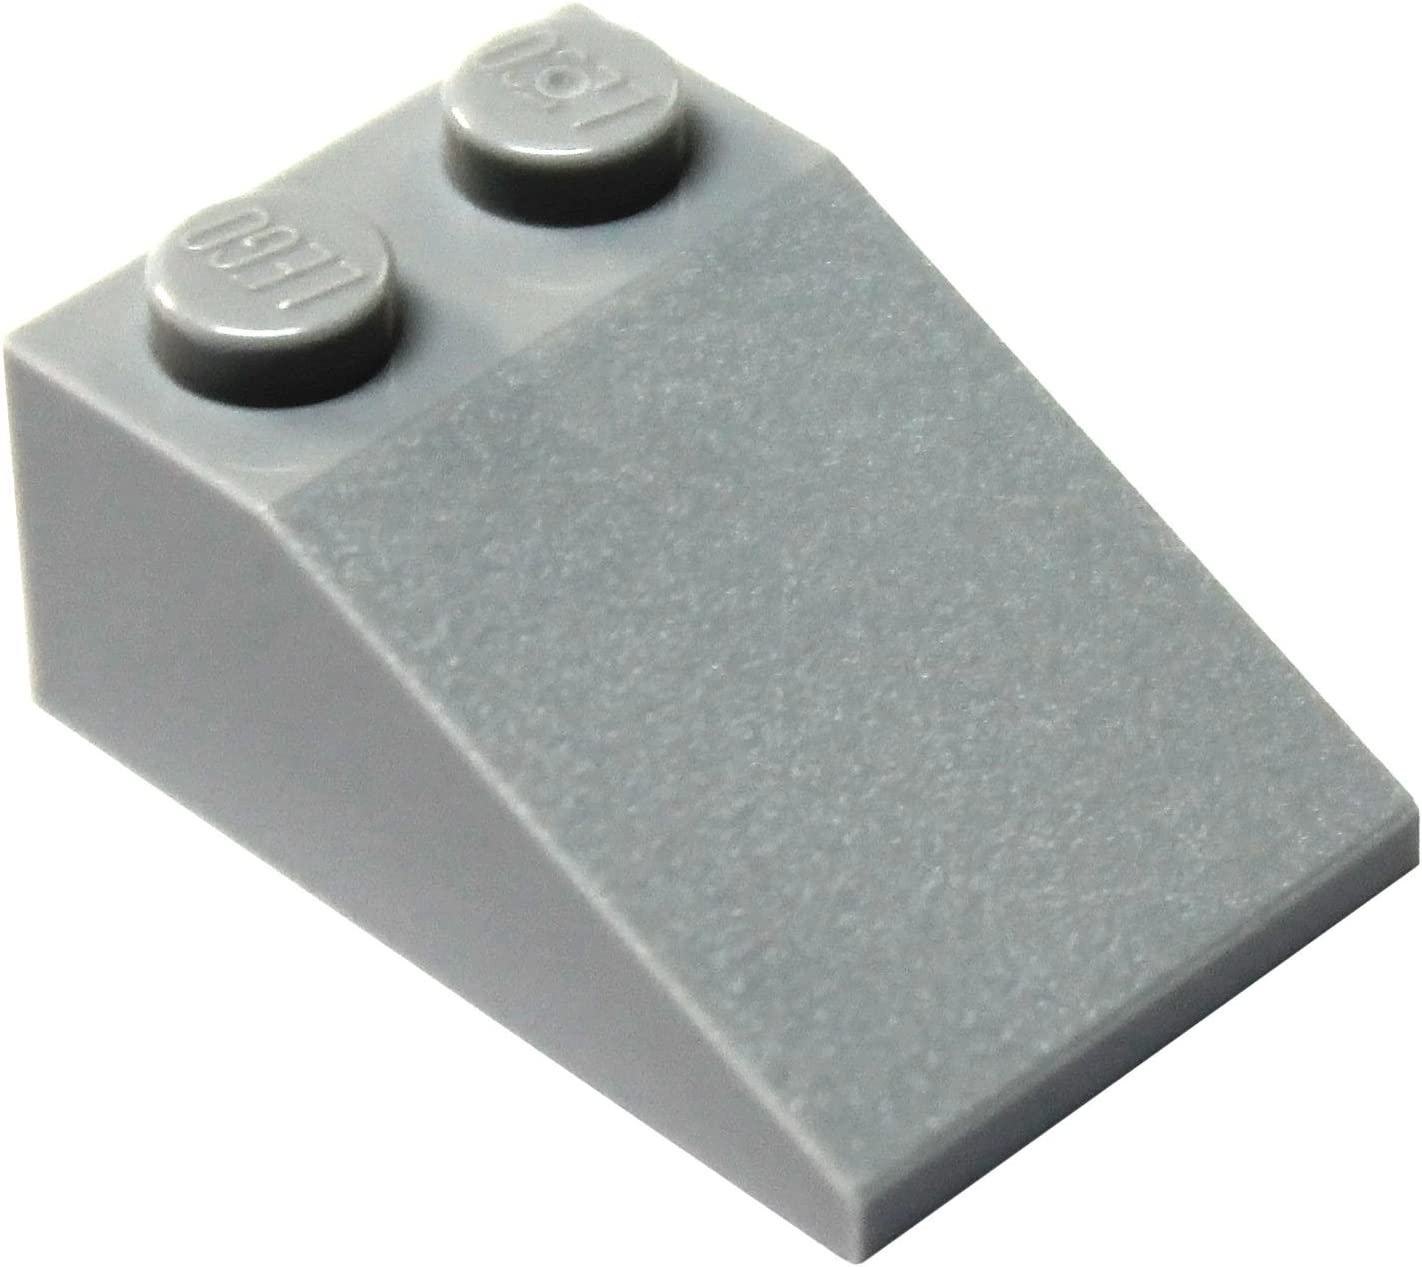 LEGO Parts and Pieces: Light Gray (Medium Stone Grey) 2x3 33 Slope x50